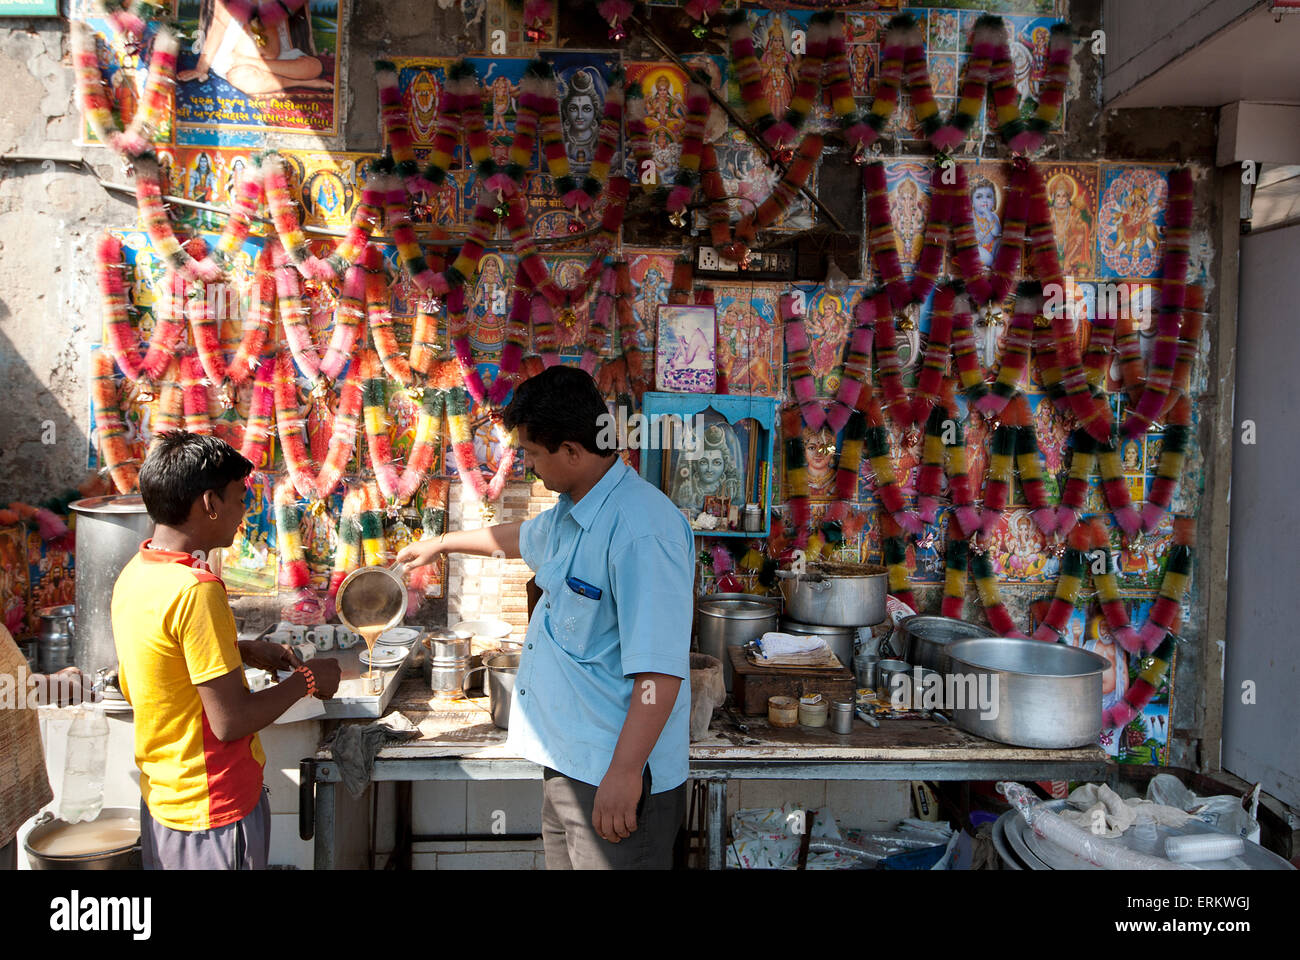 Chai wallah pouring chai (tea) at chai stall decorated with religious posters and malas (garlands), Ahmedabad, Gujarat, - Stock Image